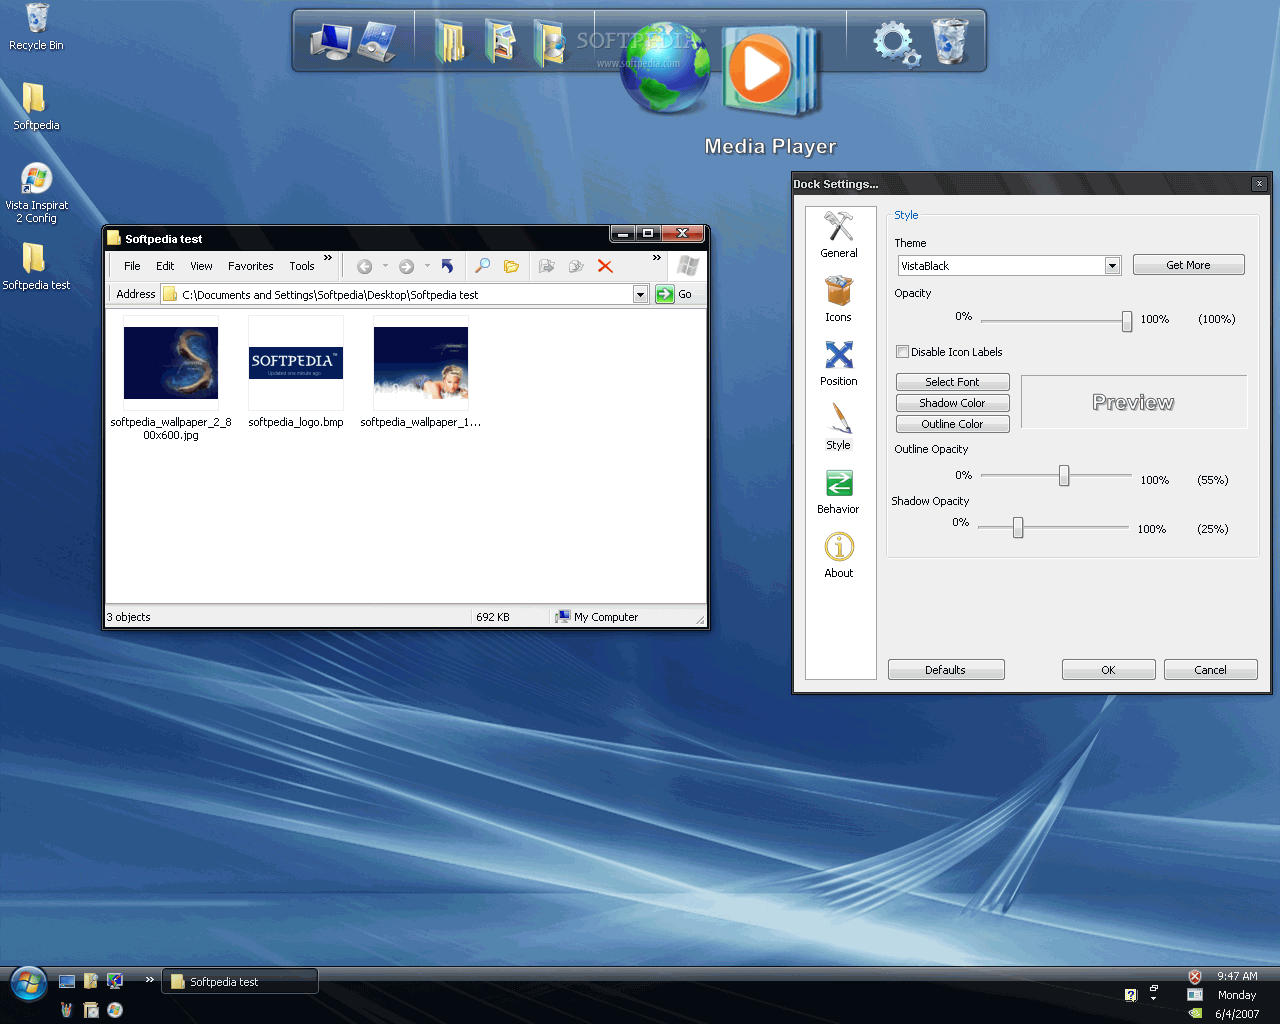 windows vista inspirat 2